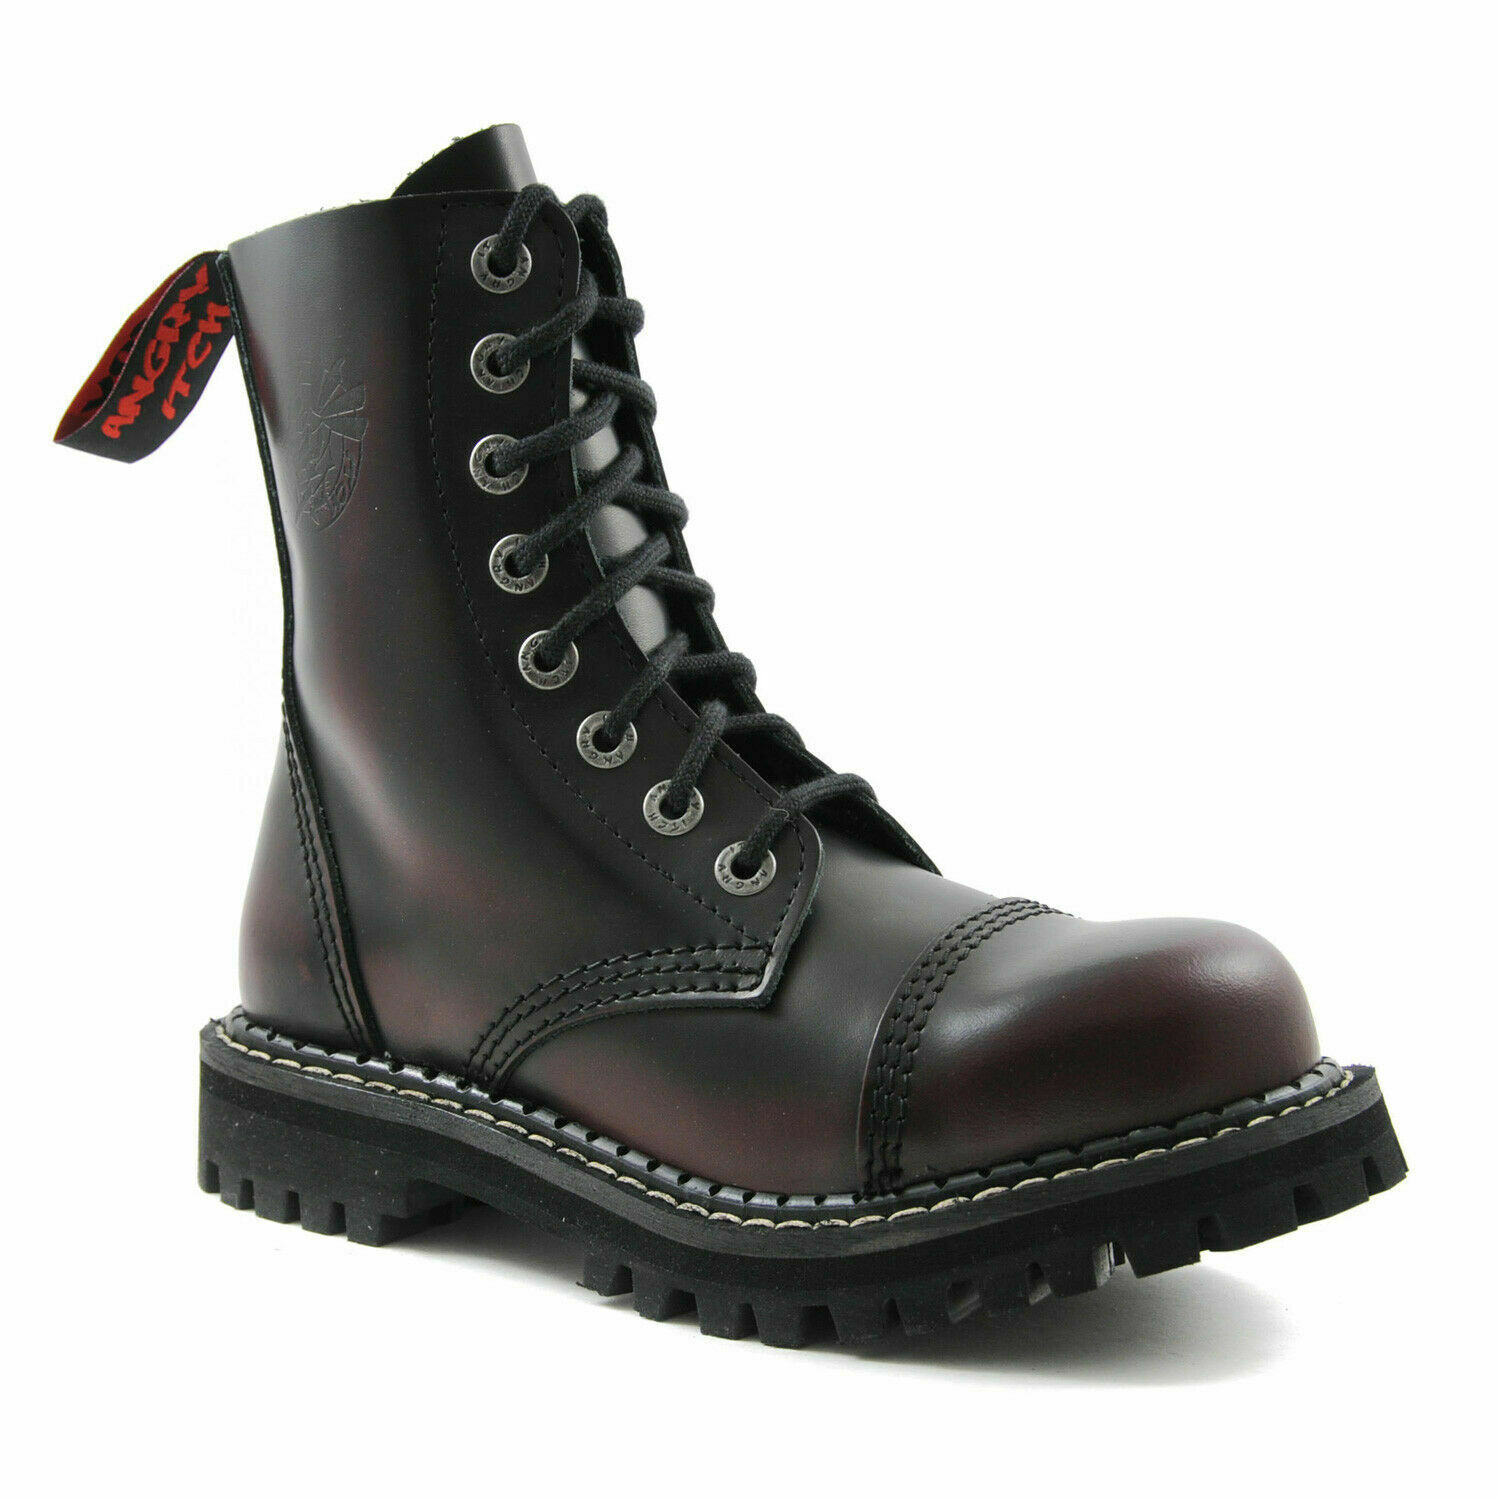 Angry Itch Stiefel 8 Hole Punk Burgundy Leather Army Ranger Stiefel With Steel Toe